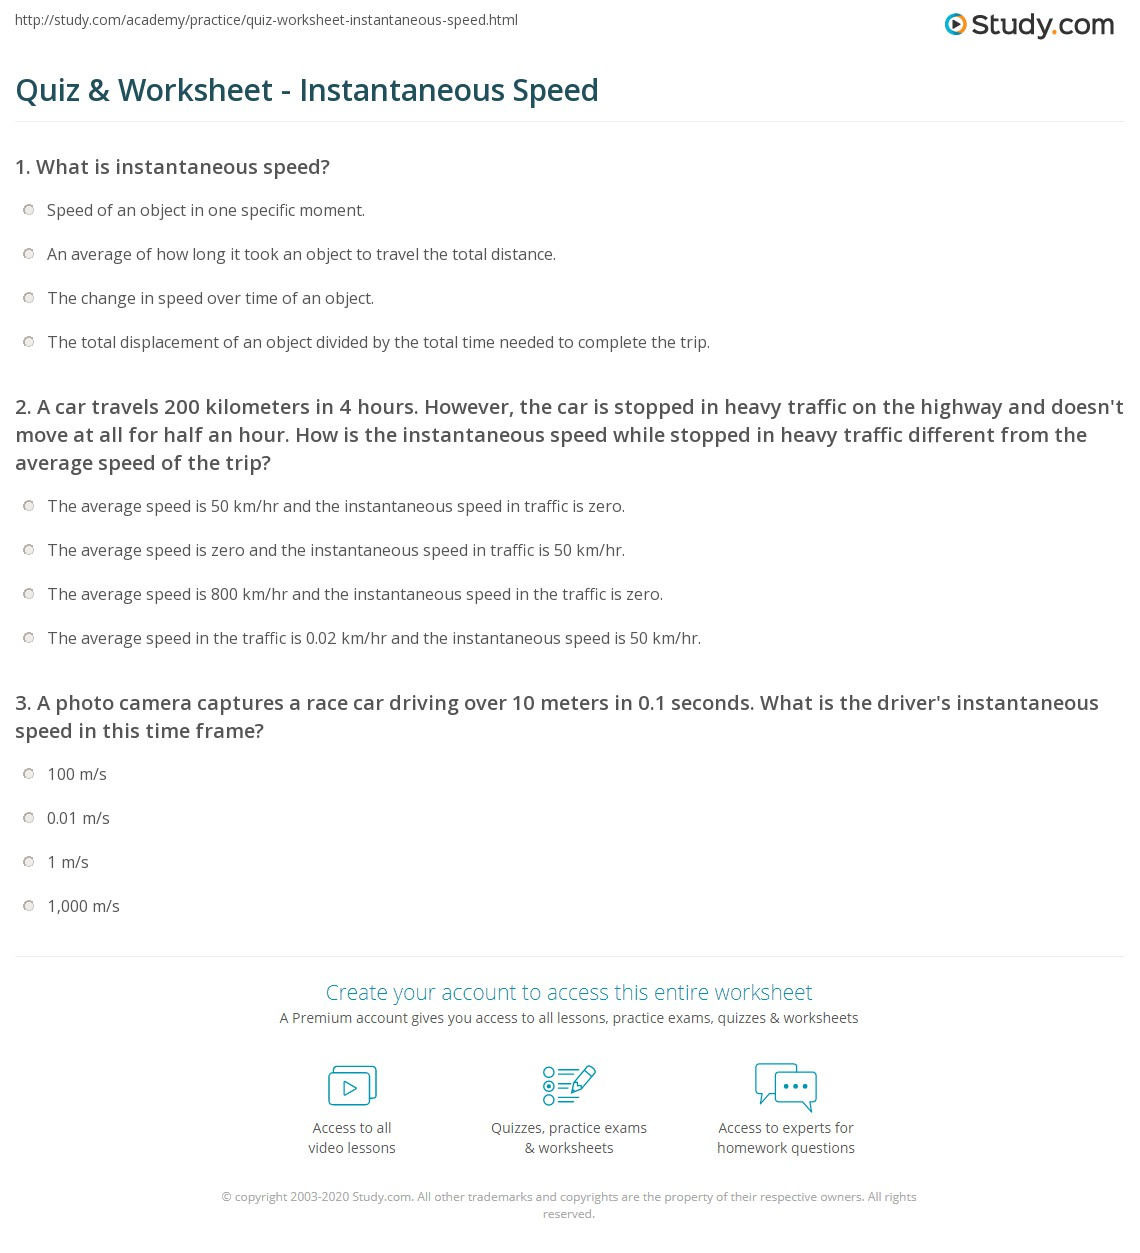 Quiz & Worksheet - Instantaneous Speed | Study.com